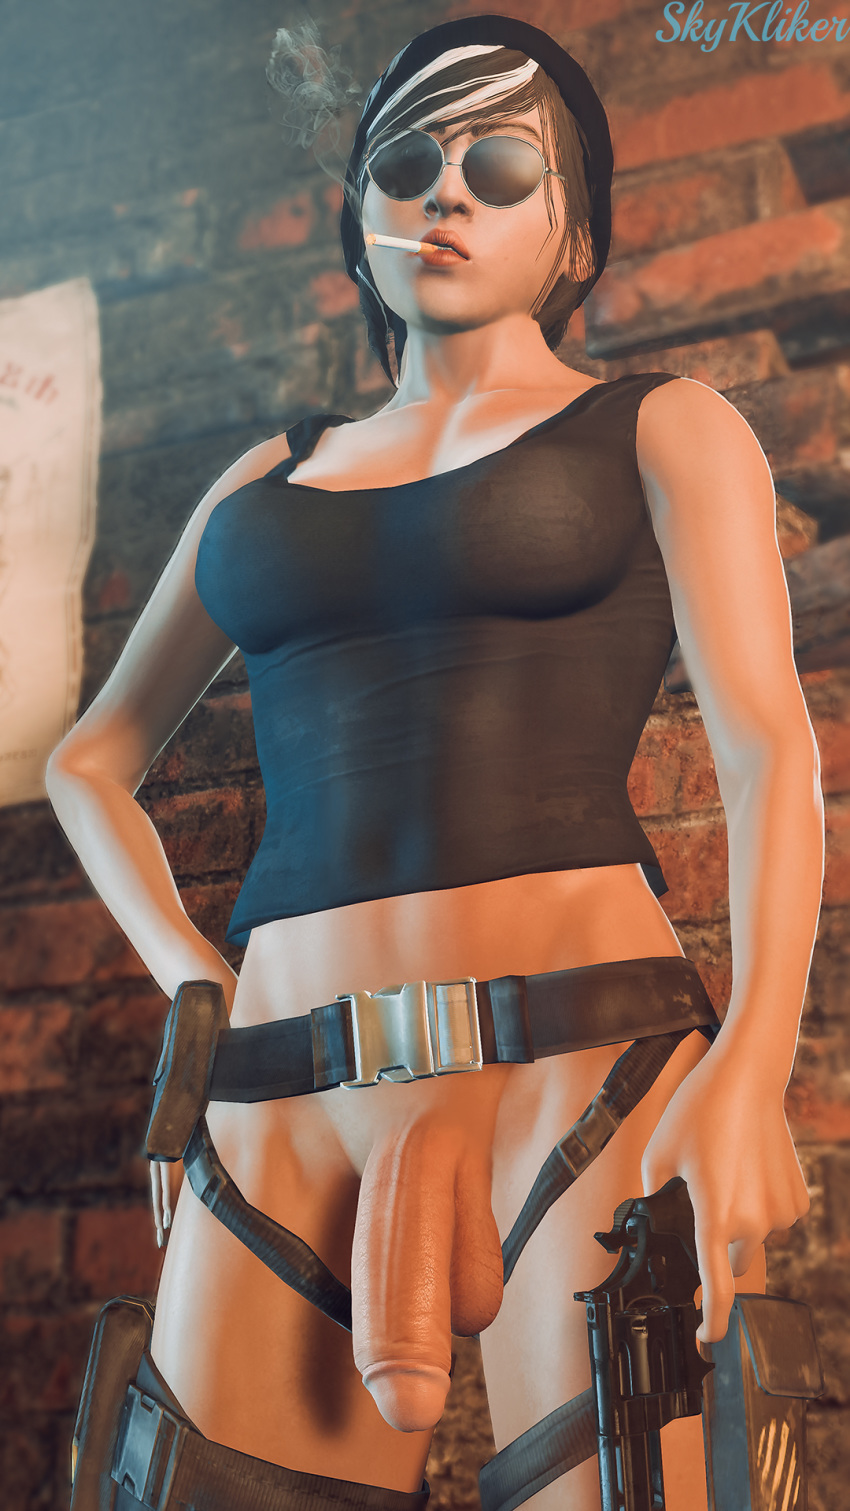 rainbow six futa siege porn Which fnia character are you